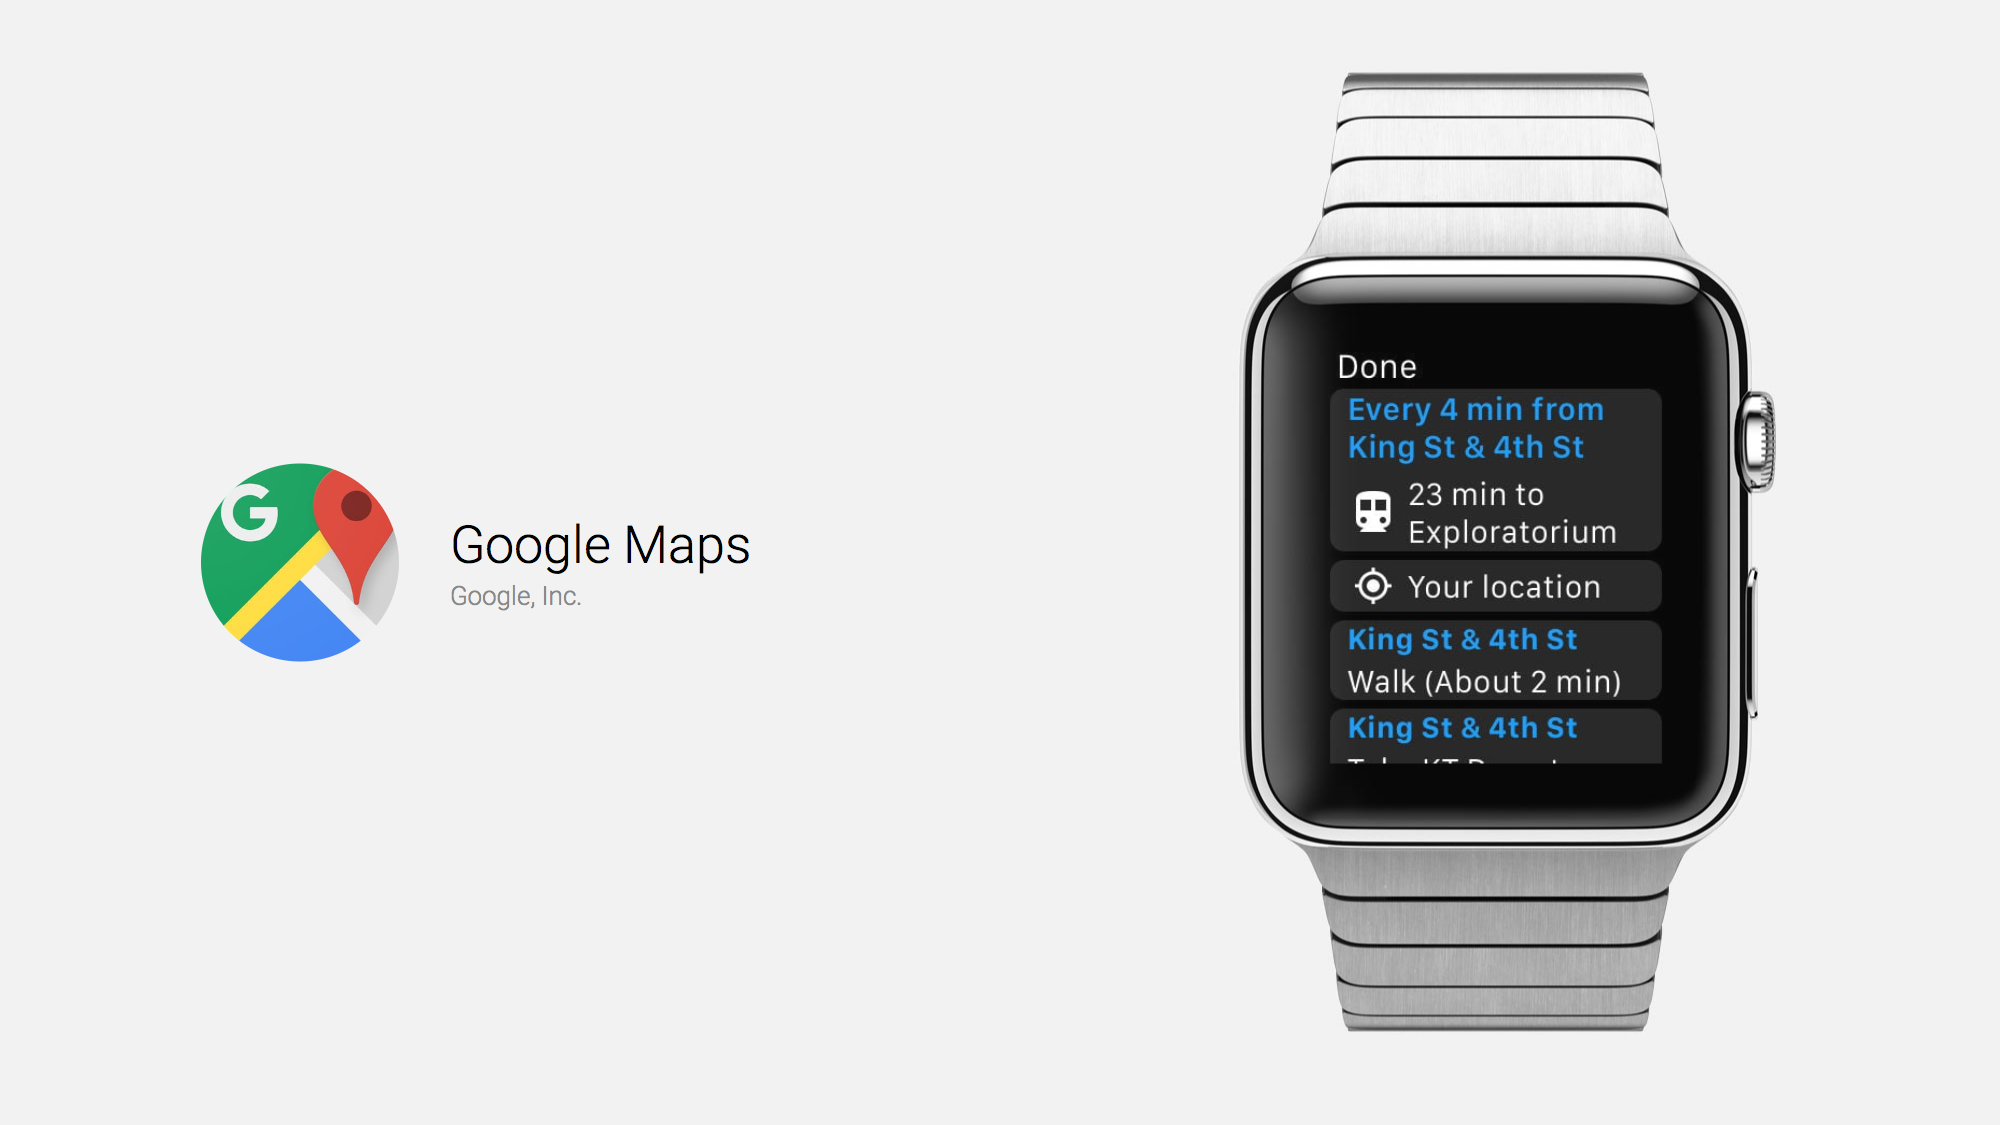 What Does It Mean When Major Apps Disappear From The Apple Watch